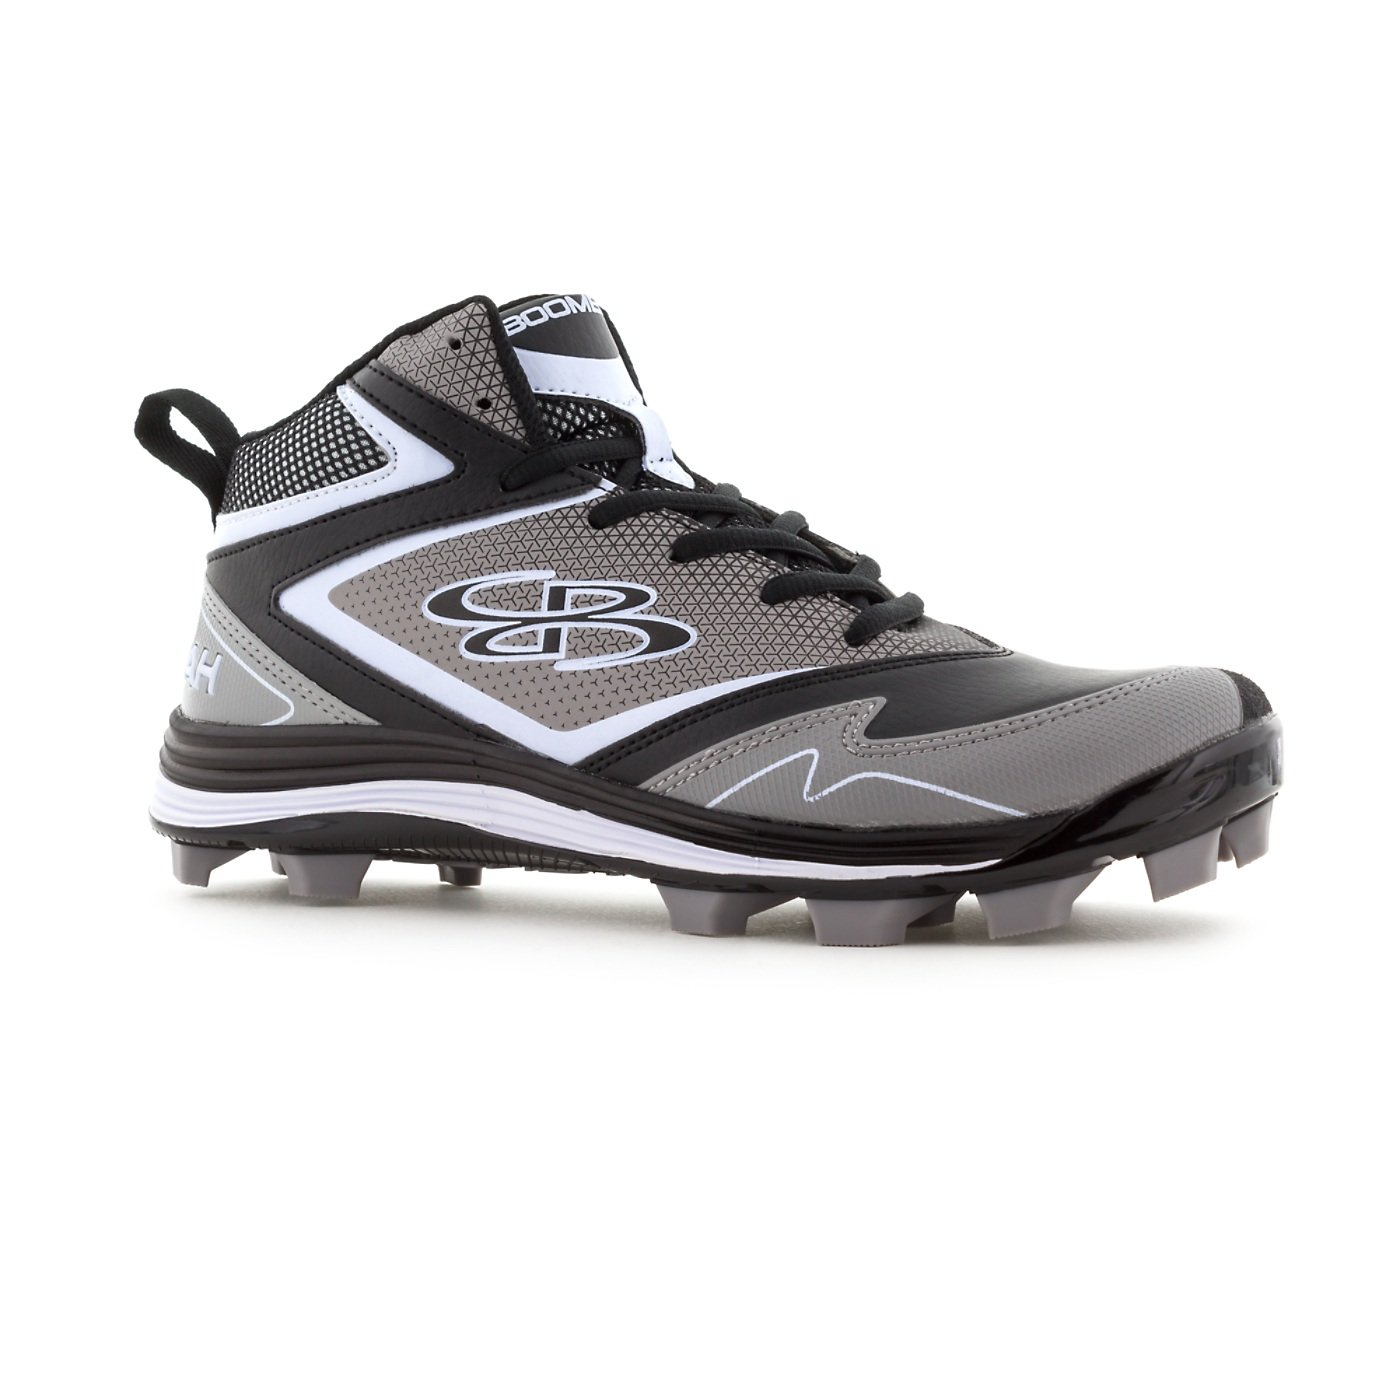 3a45d496a Amazon.com  Boombah Women s A-Game Molded Mid Cleats - 8 Color Options - Multiple  Sizes  Sports   Outdoors